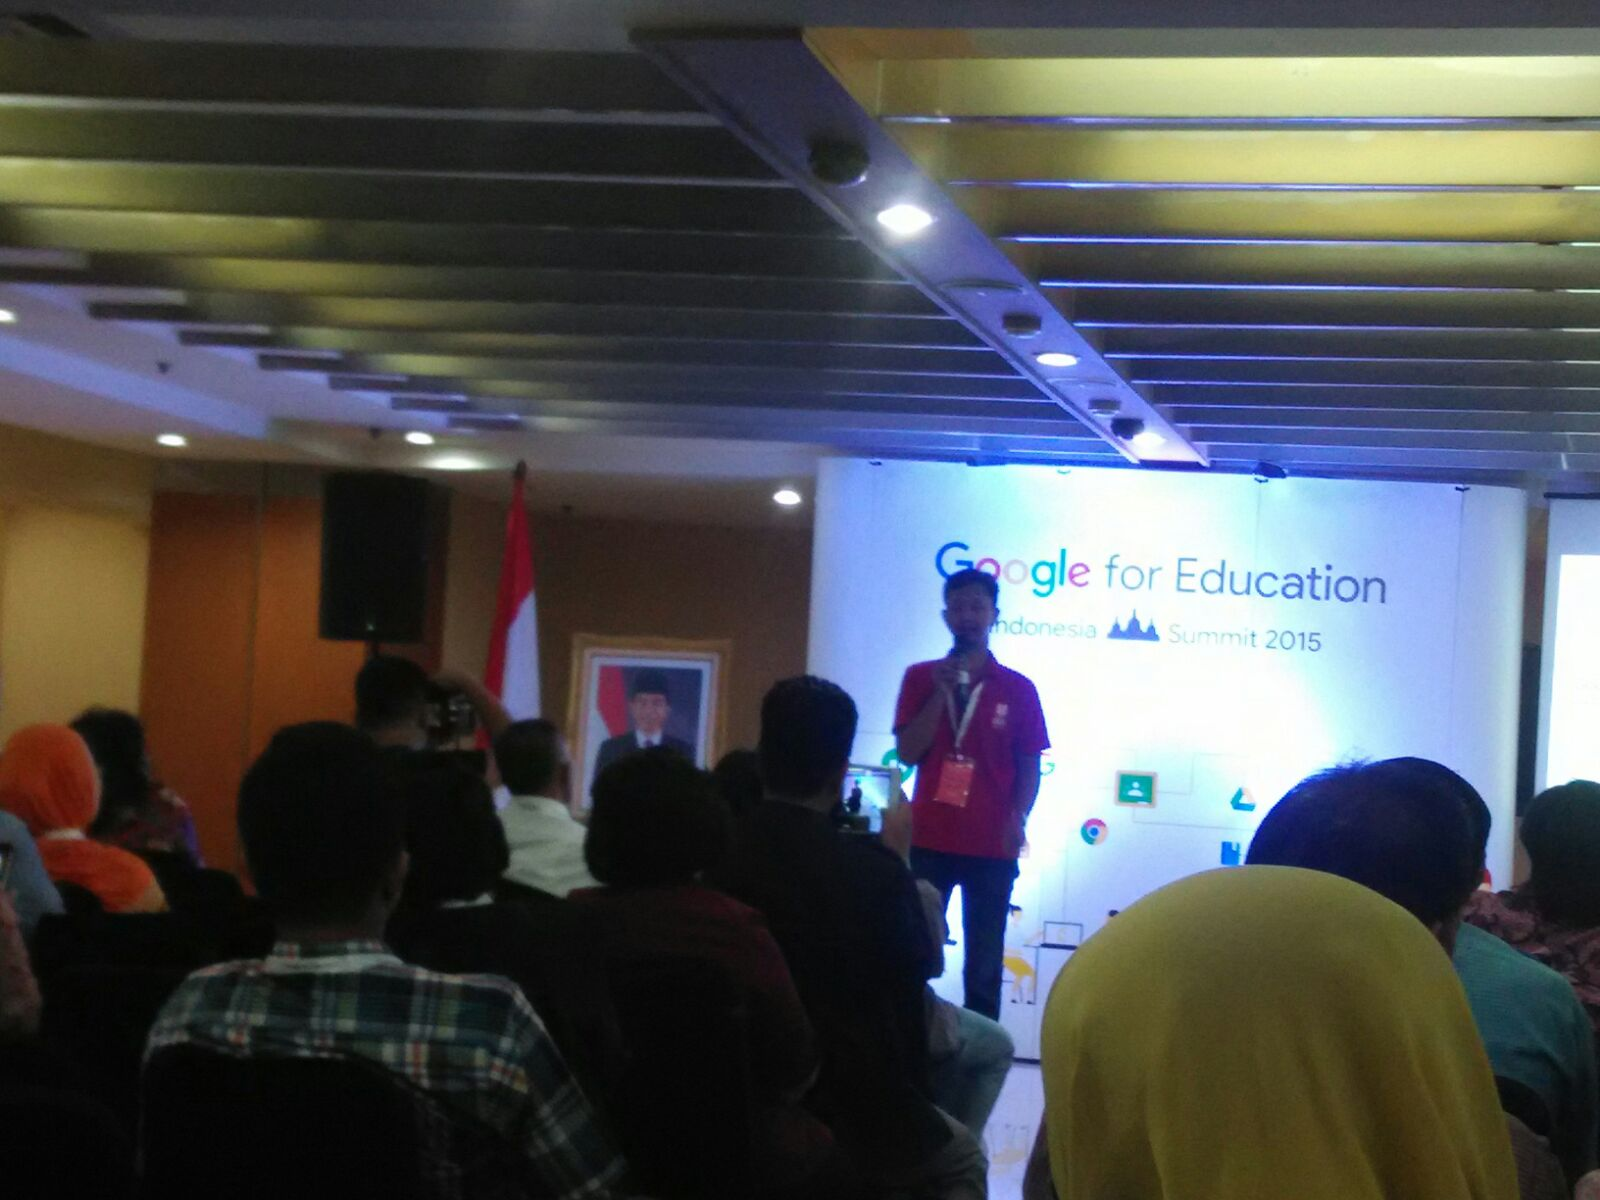 Google for Education Indonesia Summit 2015: Google Classroom Brings Learning to Students Anytime, Anywhere